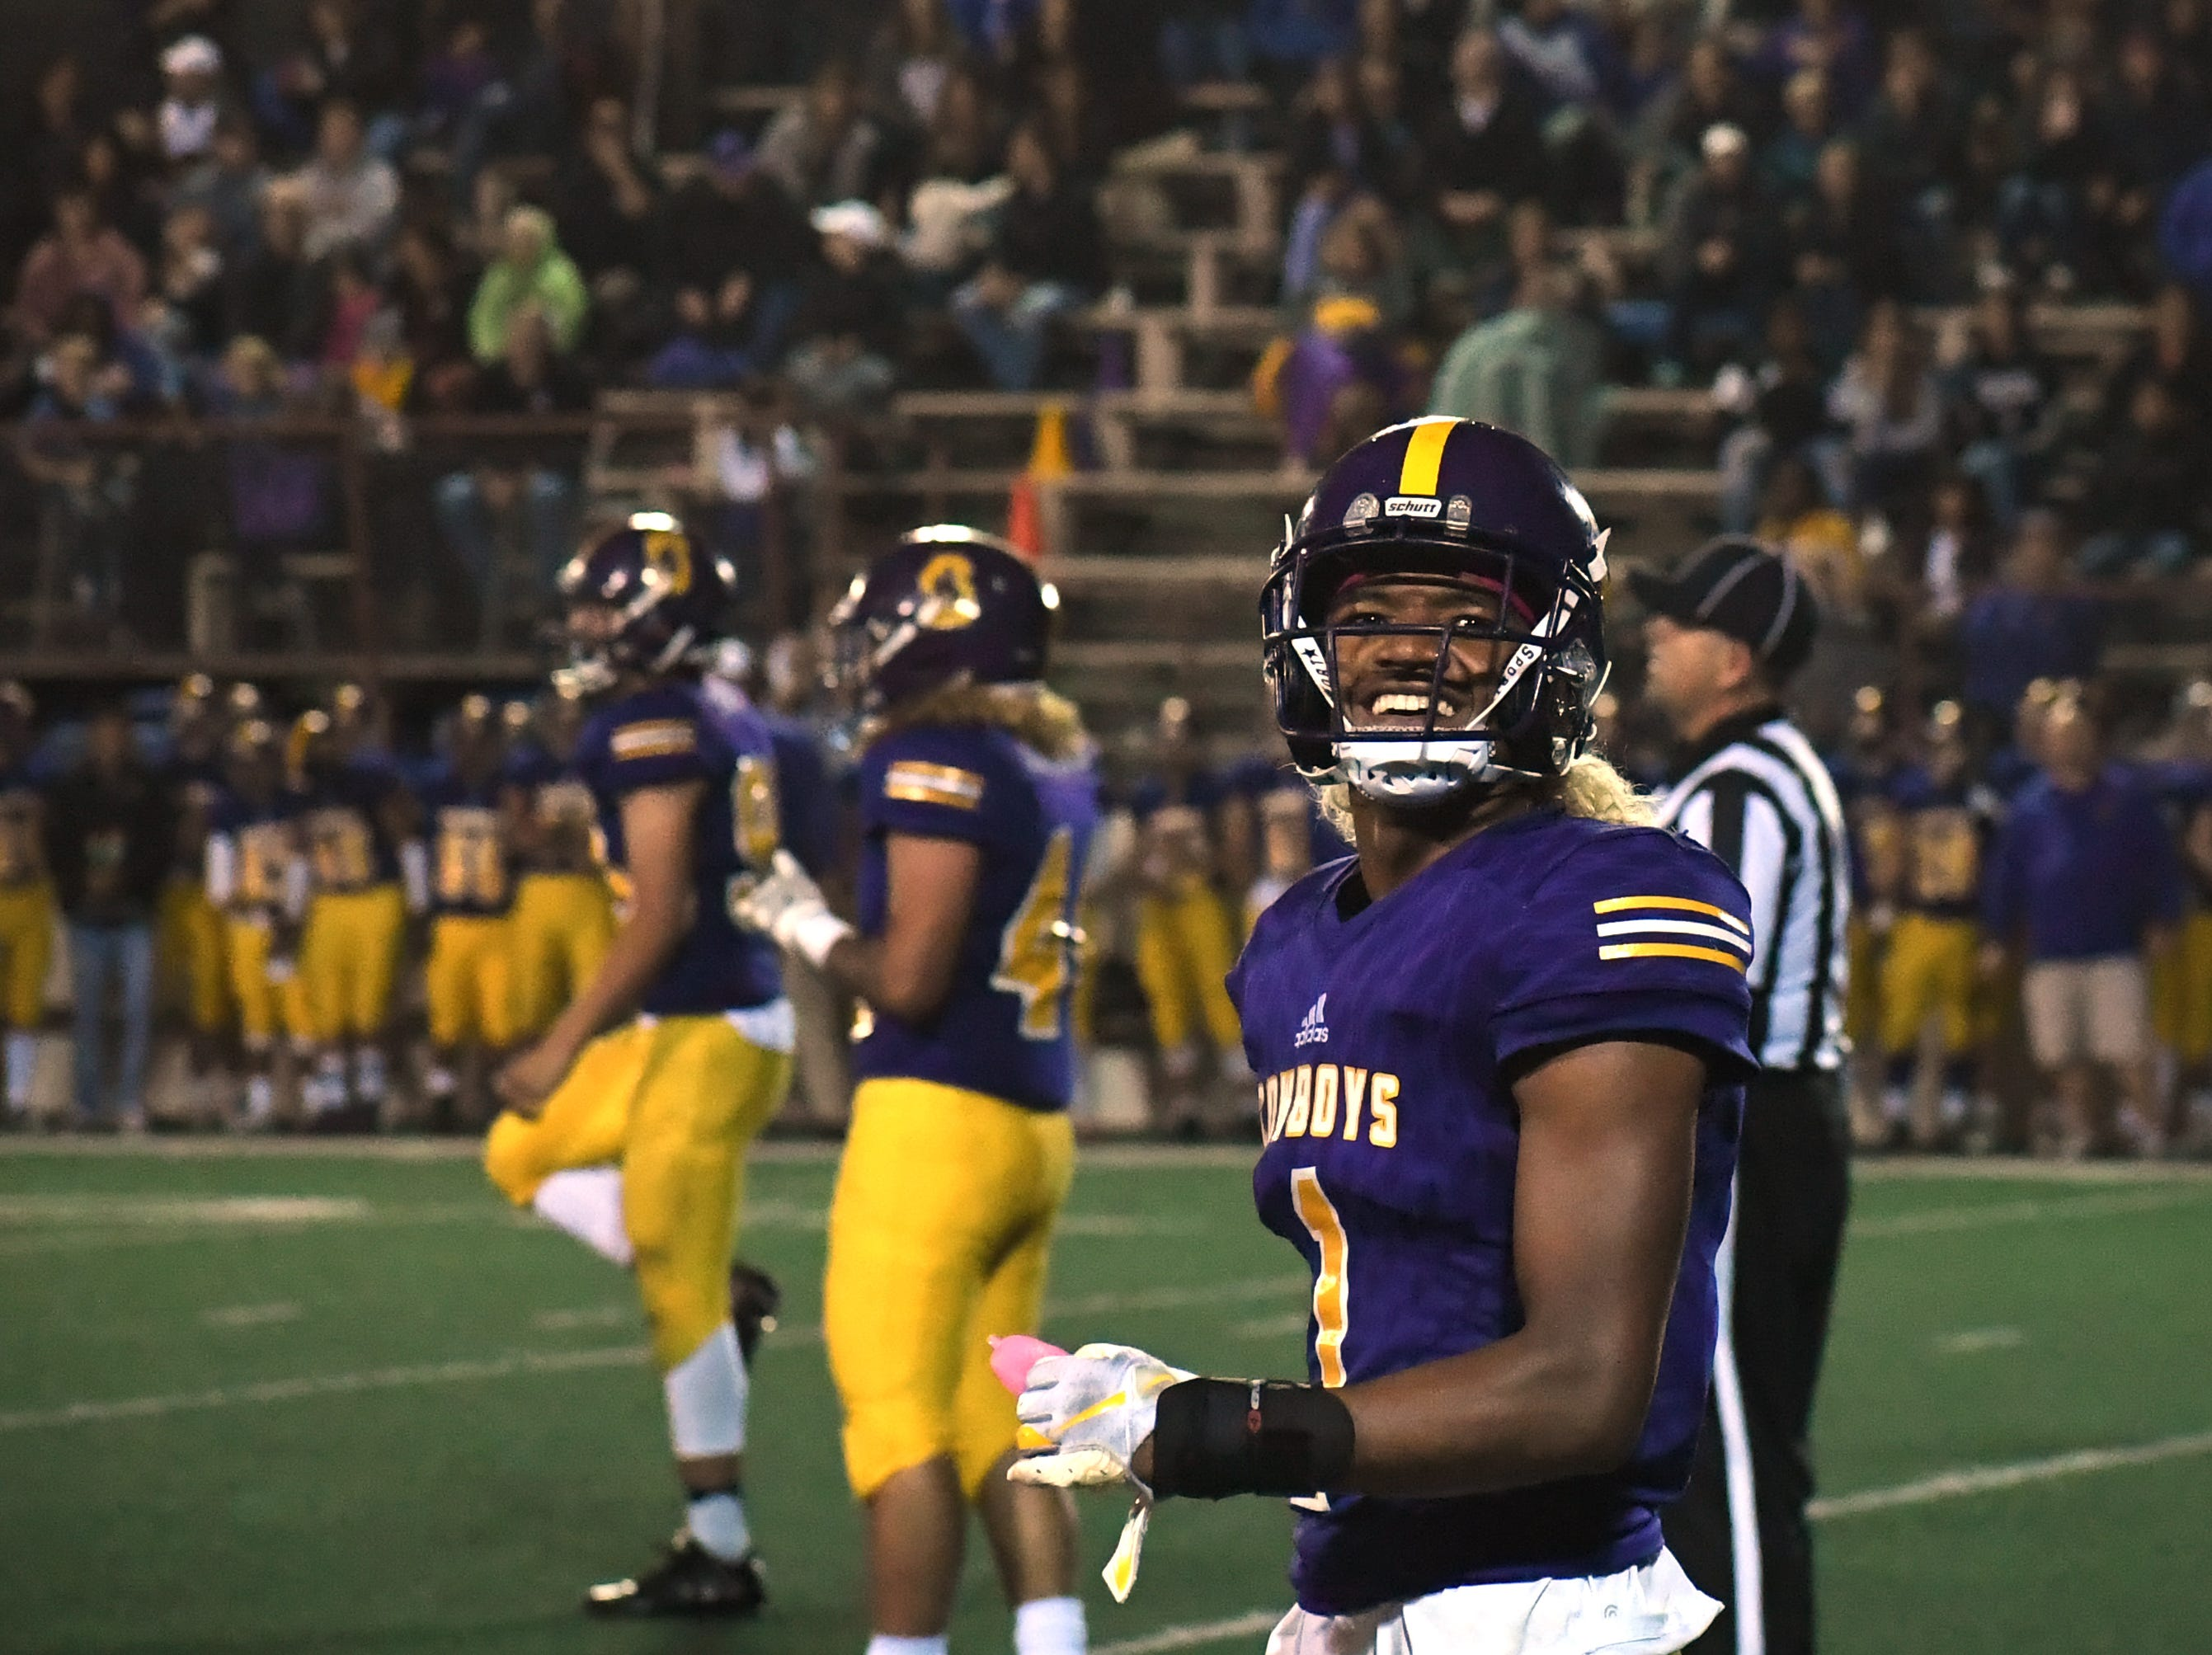 Salinas cornerback Poe Gaskins Jr. (1) laughs with a friend in the crowd.